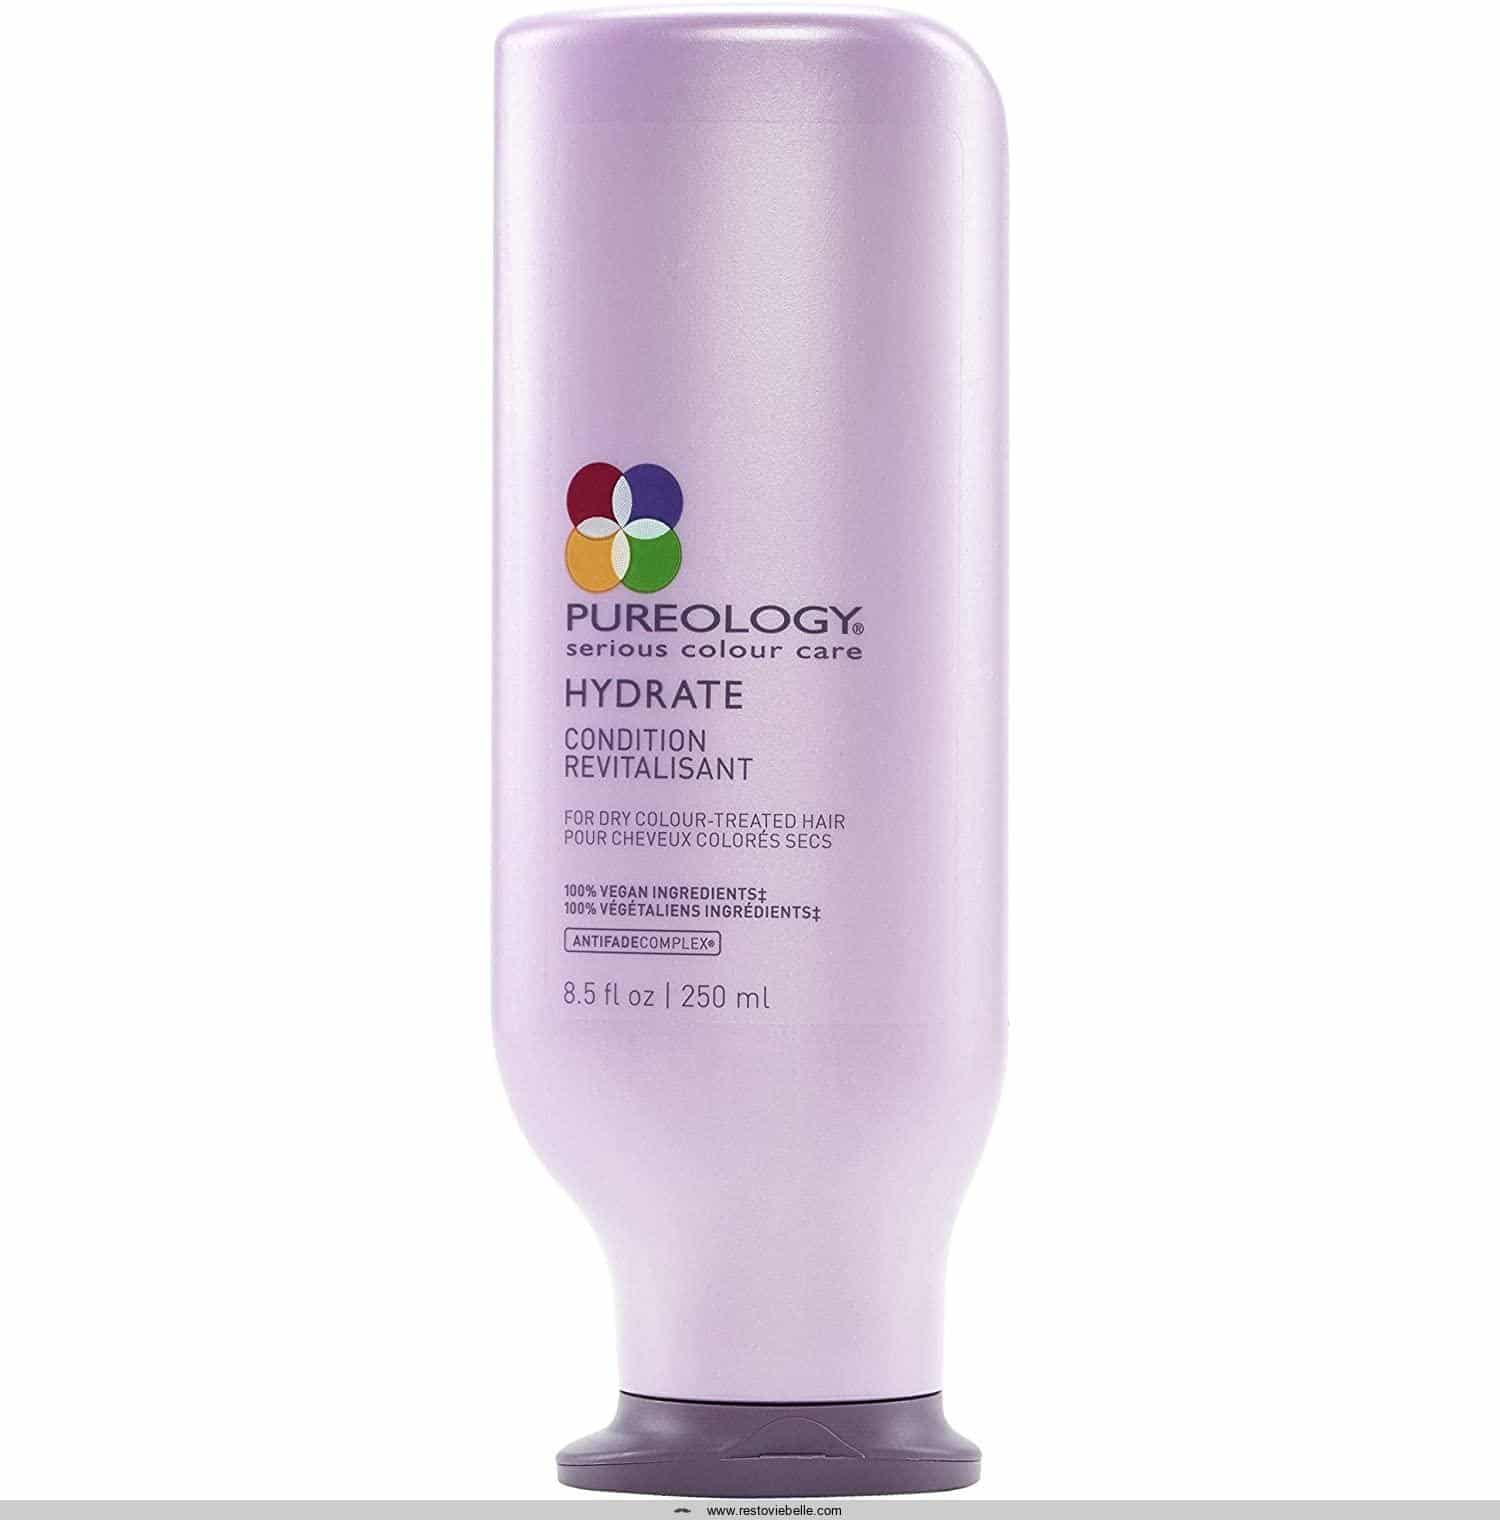 Pureology Hydrate Moisturizing Conditioner |